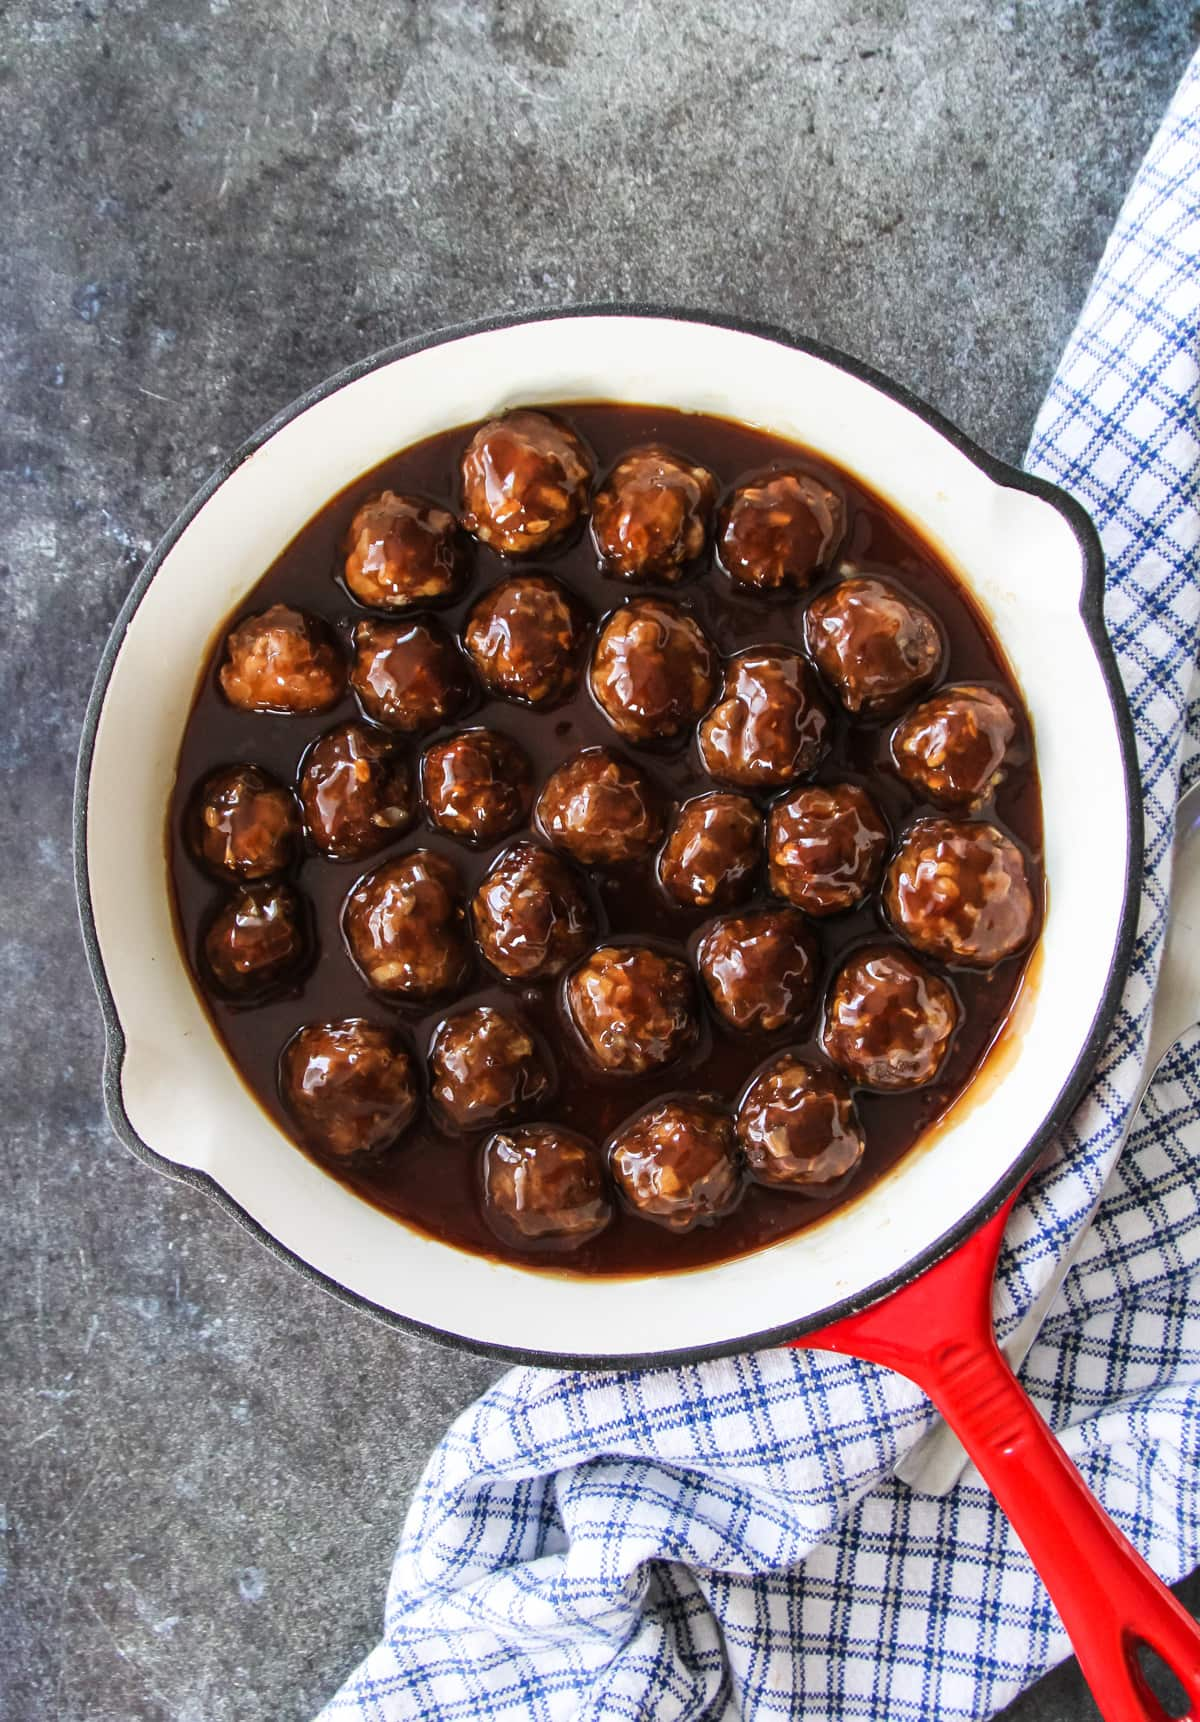 an enamel pan filled with sweet and sour meatballs. sitting on a grey background and blue checked towel